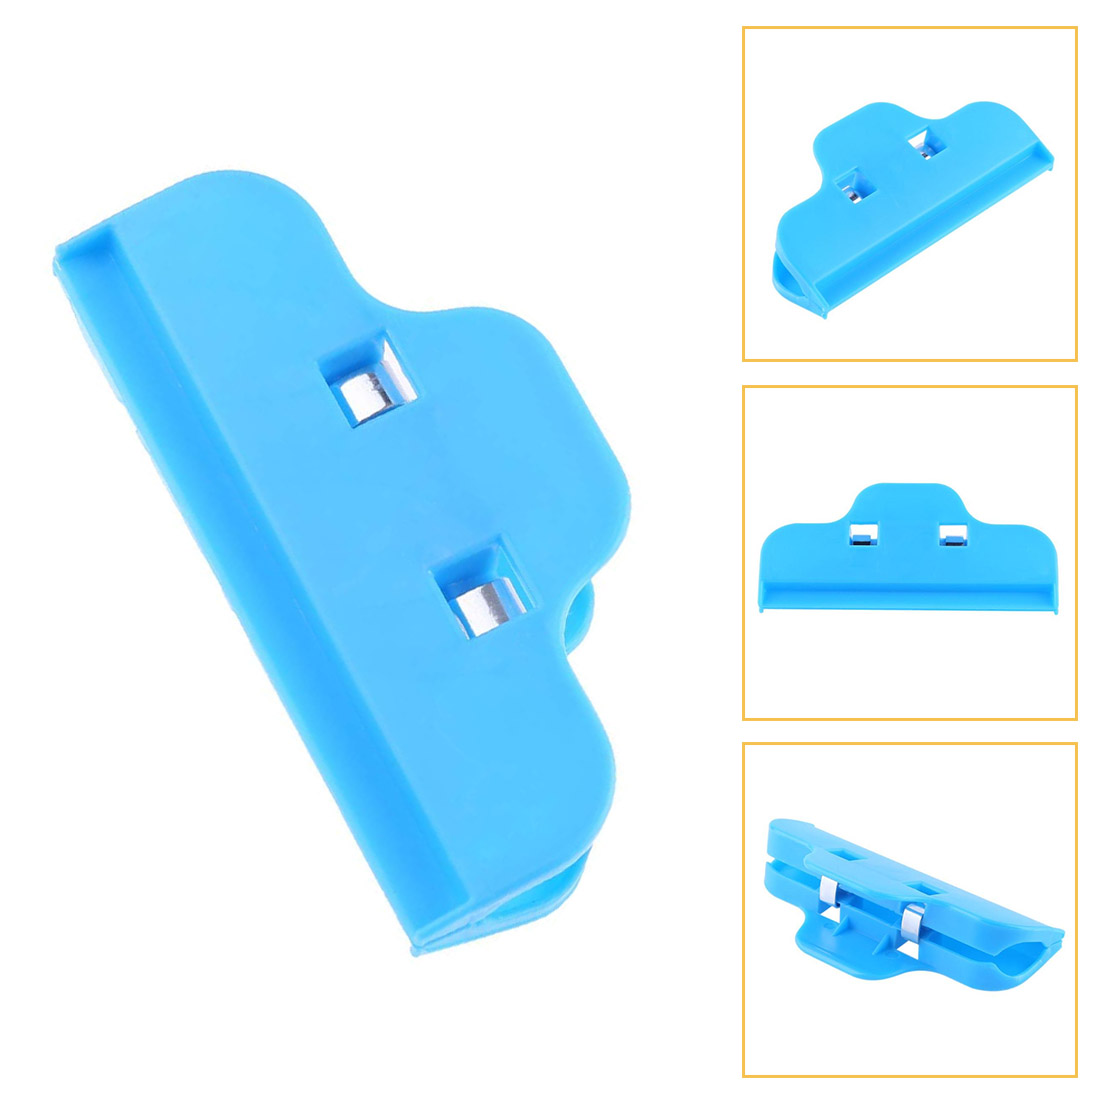 4pcs Fastening Clamps Mobile Phone Repair Tools Plastic Clips Fixture Fastening for Tablet Phone LCD Screen Adjustable Holders4pcs Fastening Clamps Mobile Phone Repair Tools Plastic Clips Fixture Fastening for Tablet Phone LCD Screen Adjustable Holders